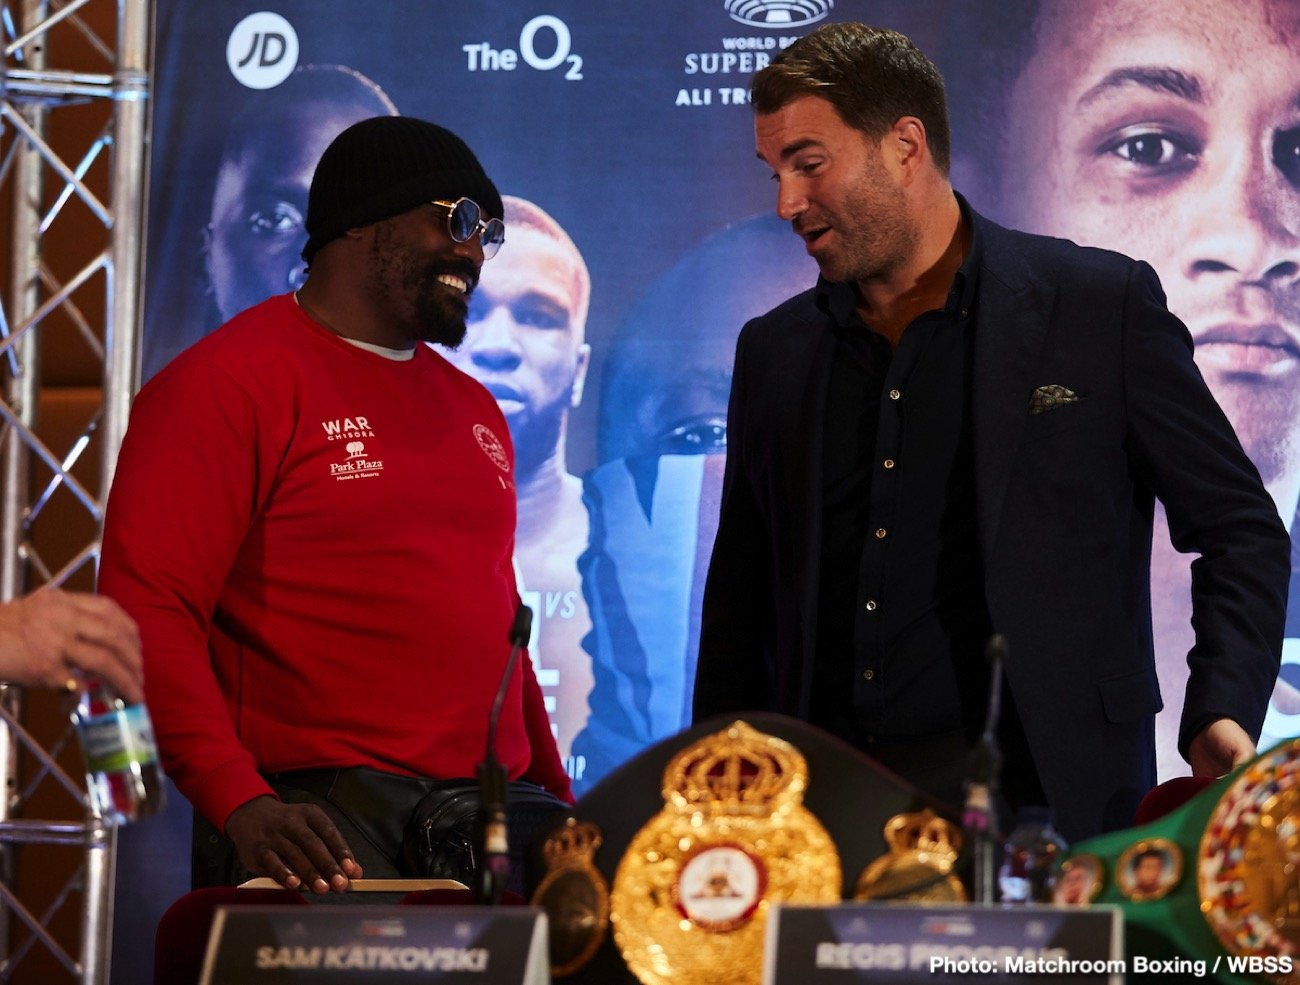 Josh Taylor - Derek Chisora - I'm bringing war, I'm not playing. This is my show. Boxing is thriving because of the Heavyweights. Mike Tyson said it when AJ knocked out Klitschko, the money is back in the division. I want more money if I'm not headlining the show!